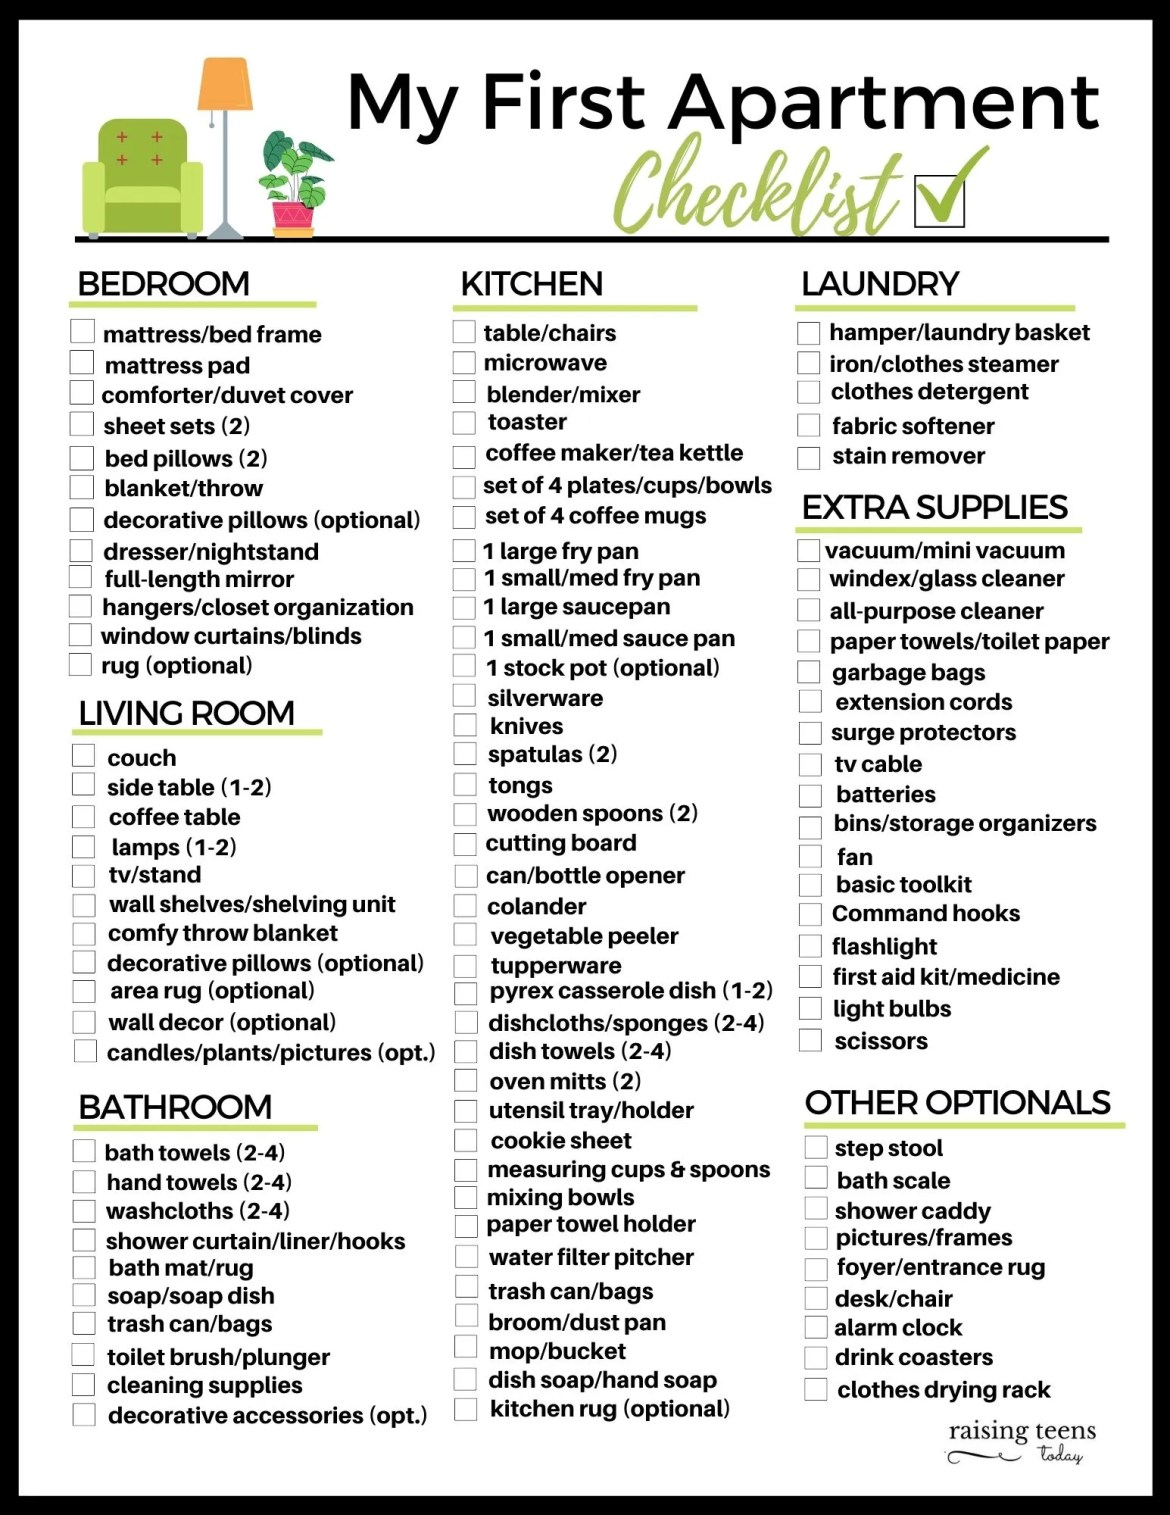 My First Apartment Checklist Free Printable Raising Teens Today